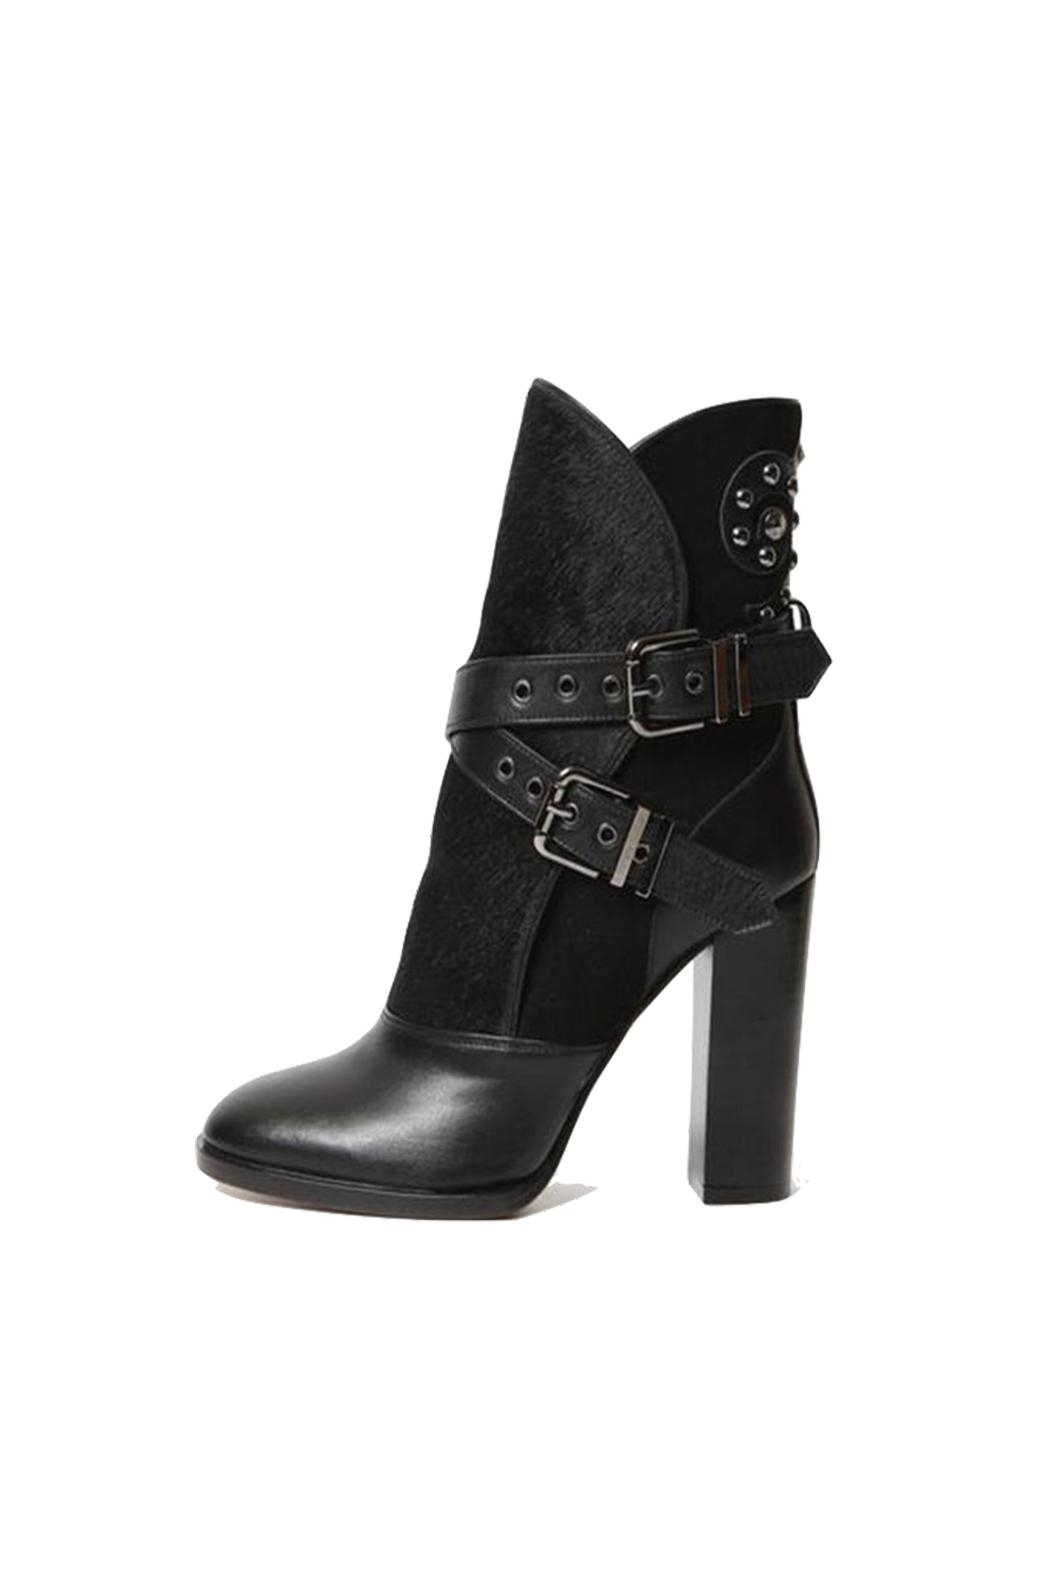 HAVVA Edgy Black Boots - Front Cropped Image